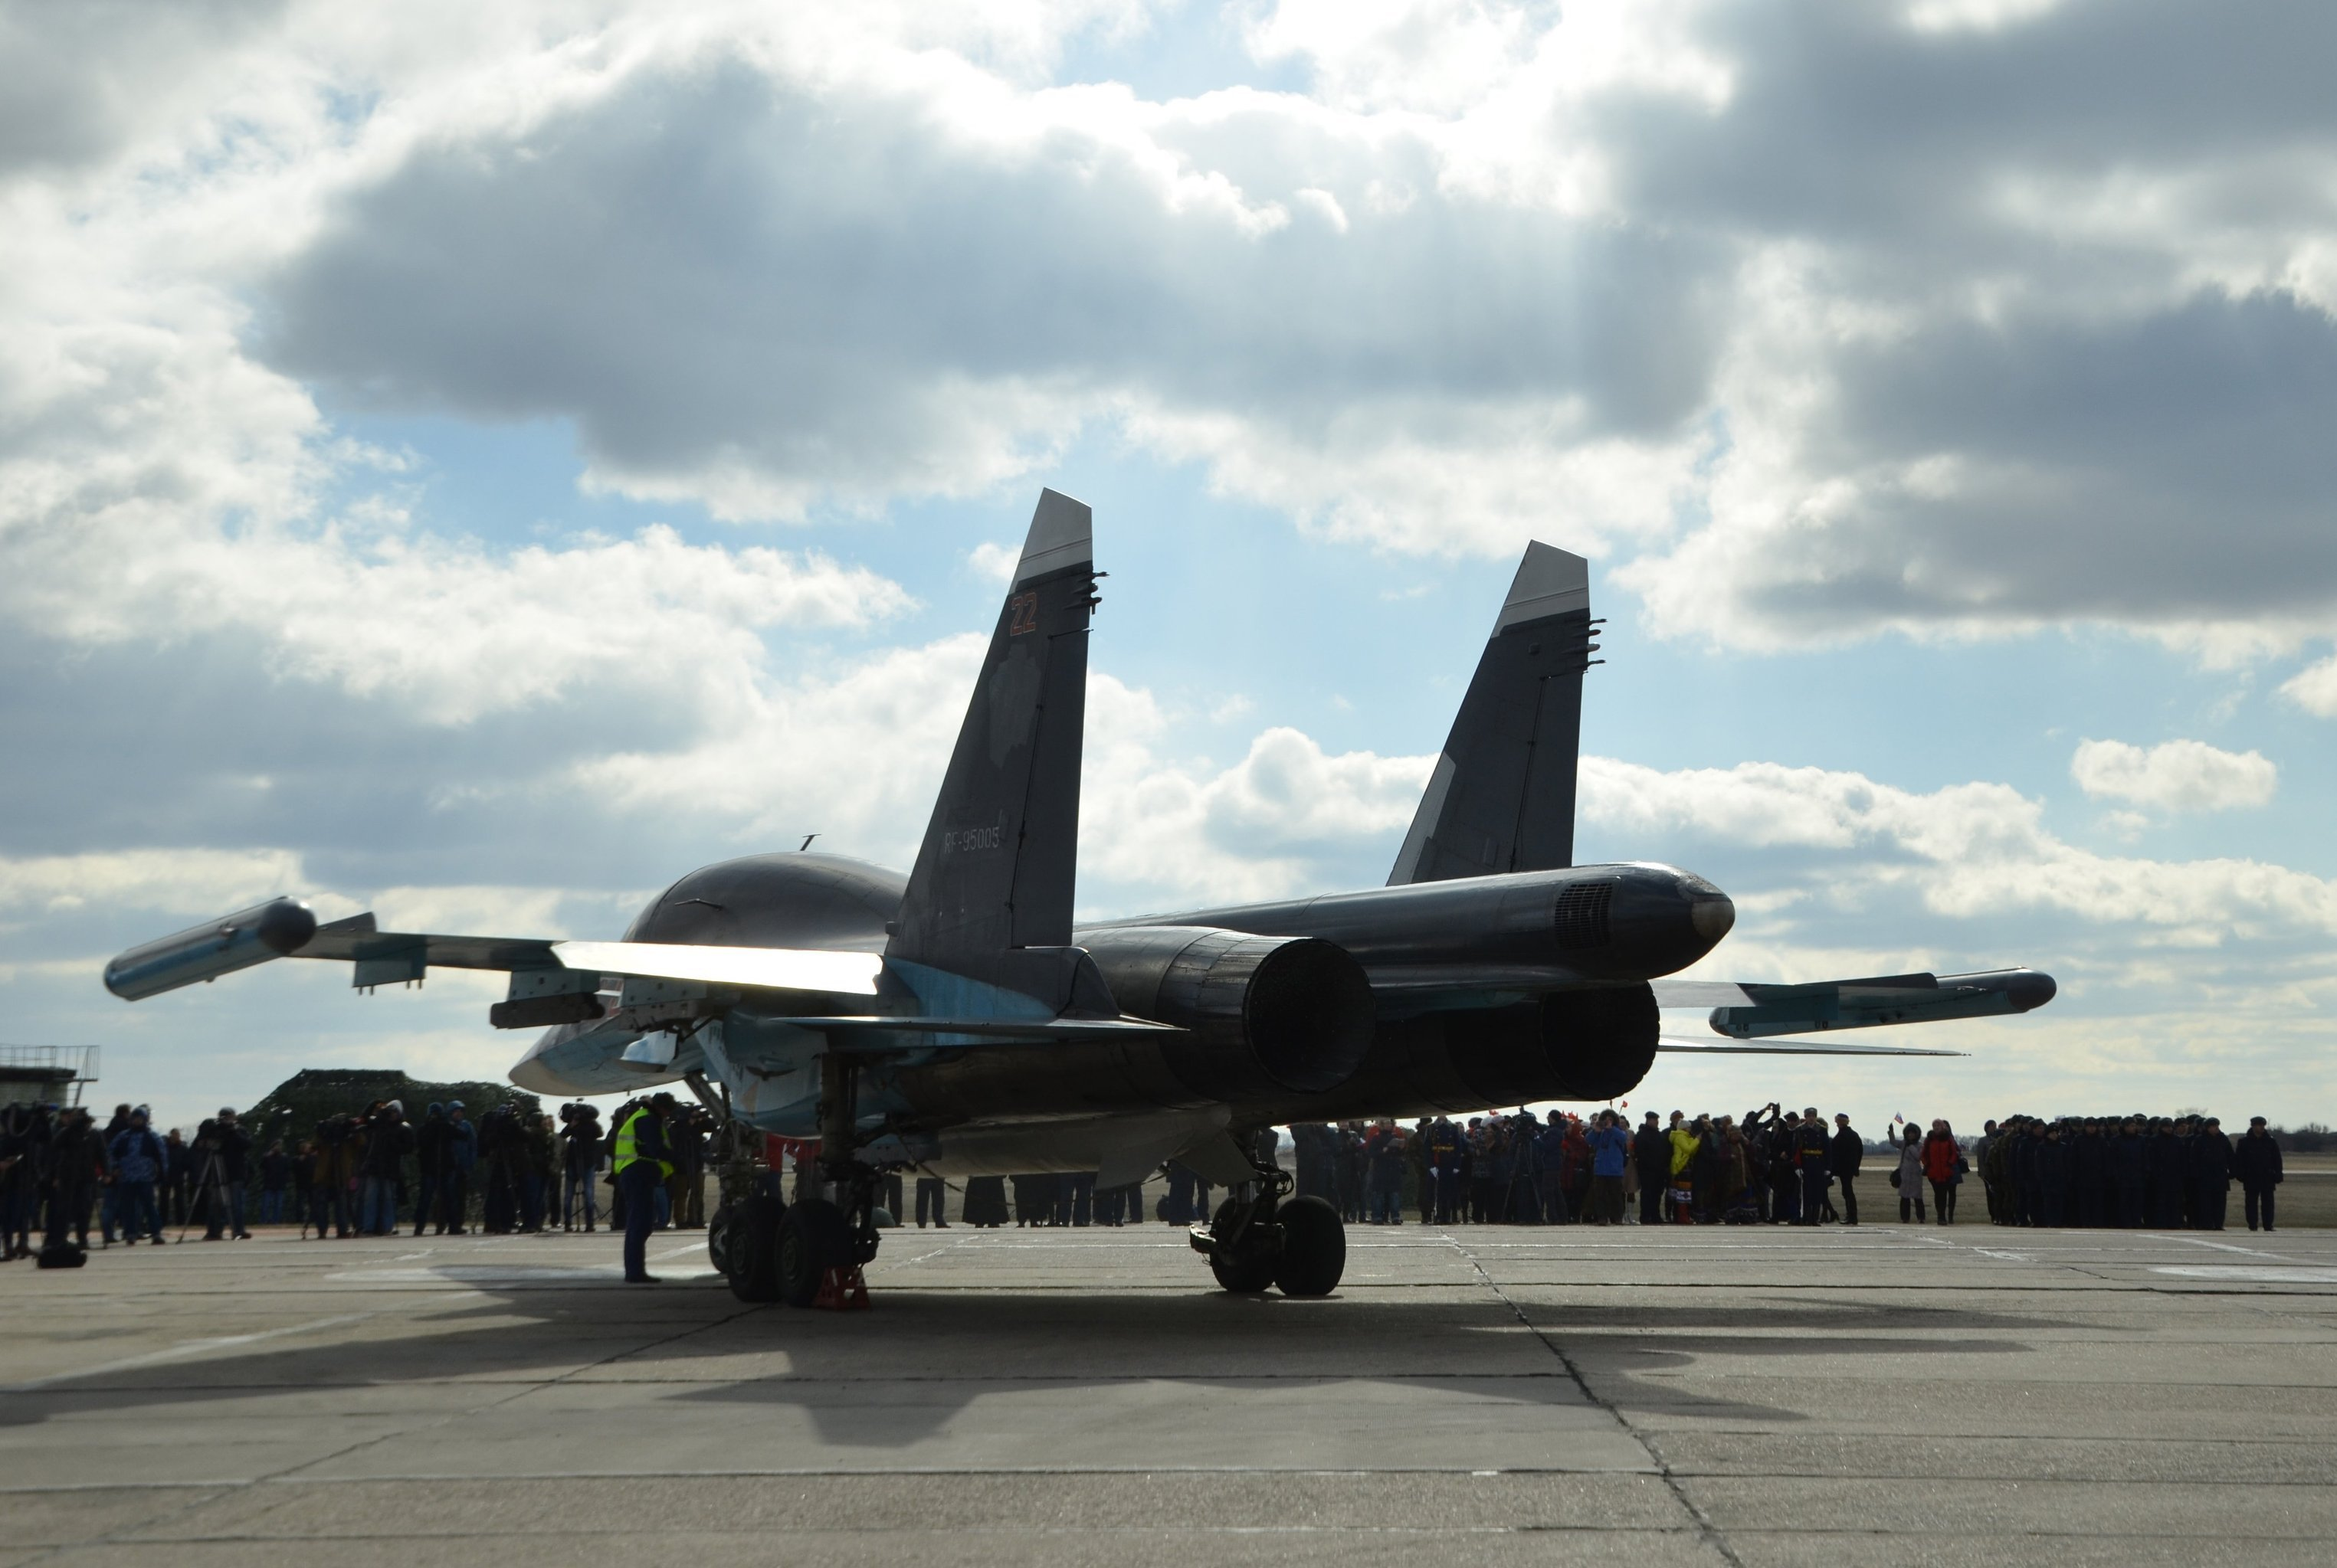 Pilots of Russian Su-34 bomber jets from Syria welcomed at an airbase in Russia's Voronezh region.